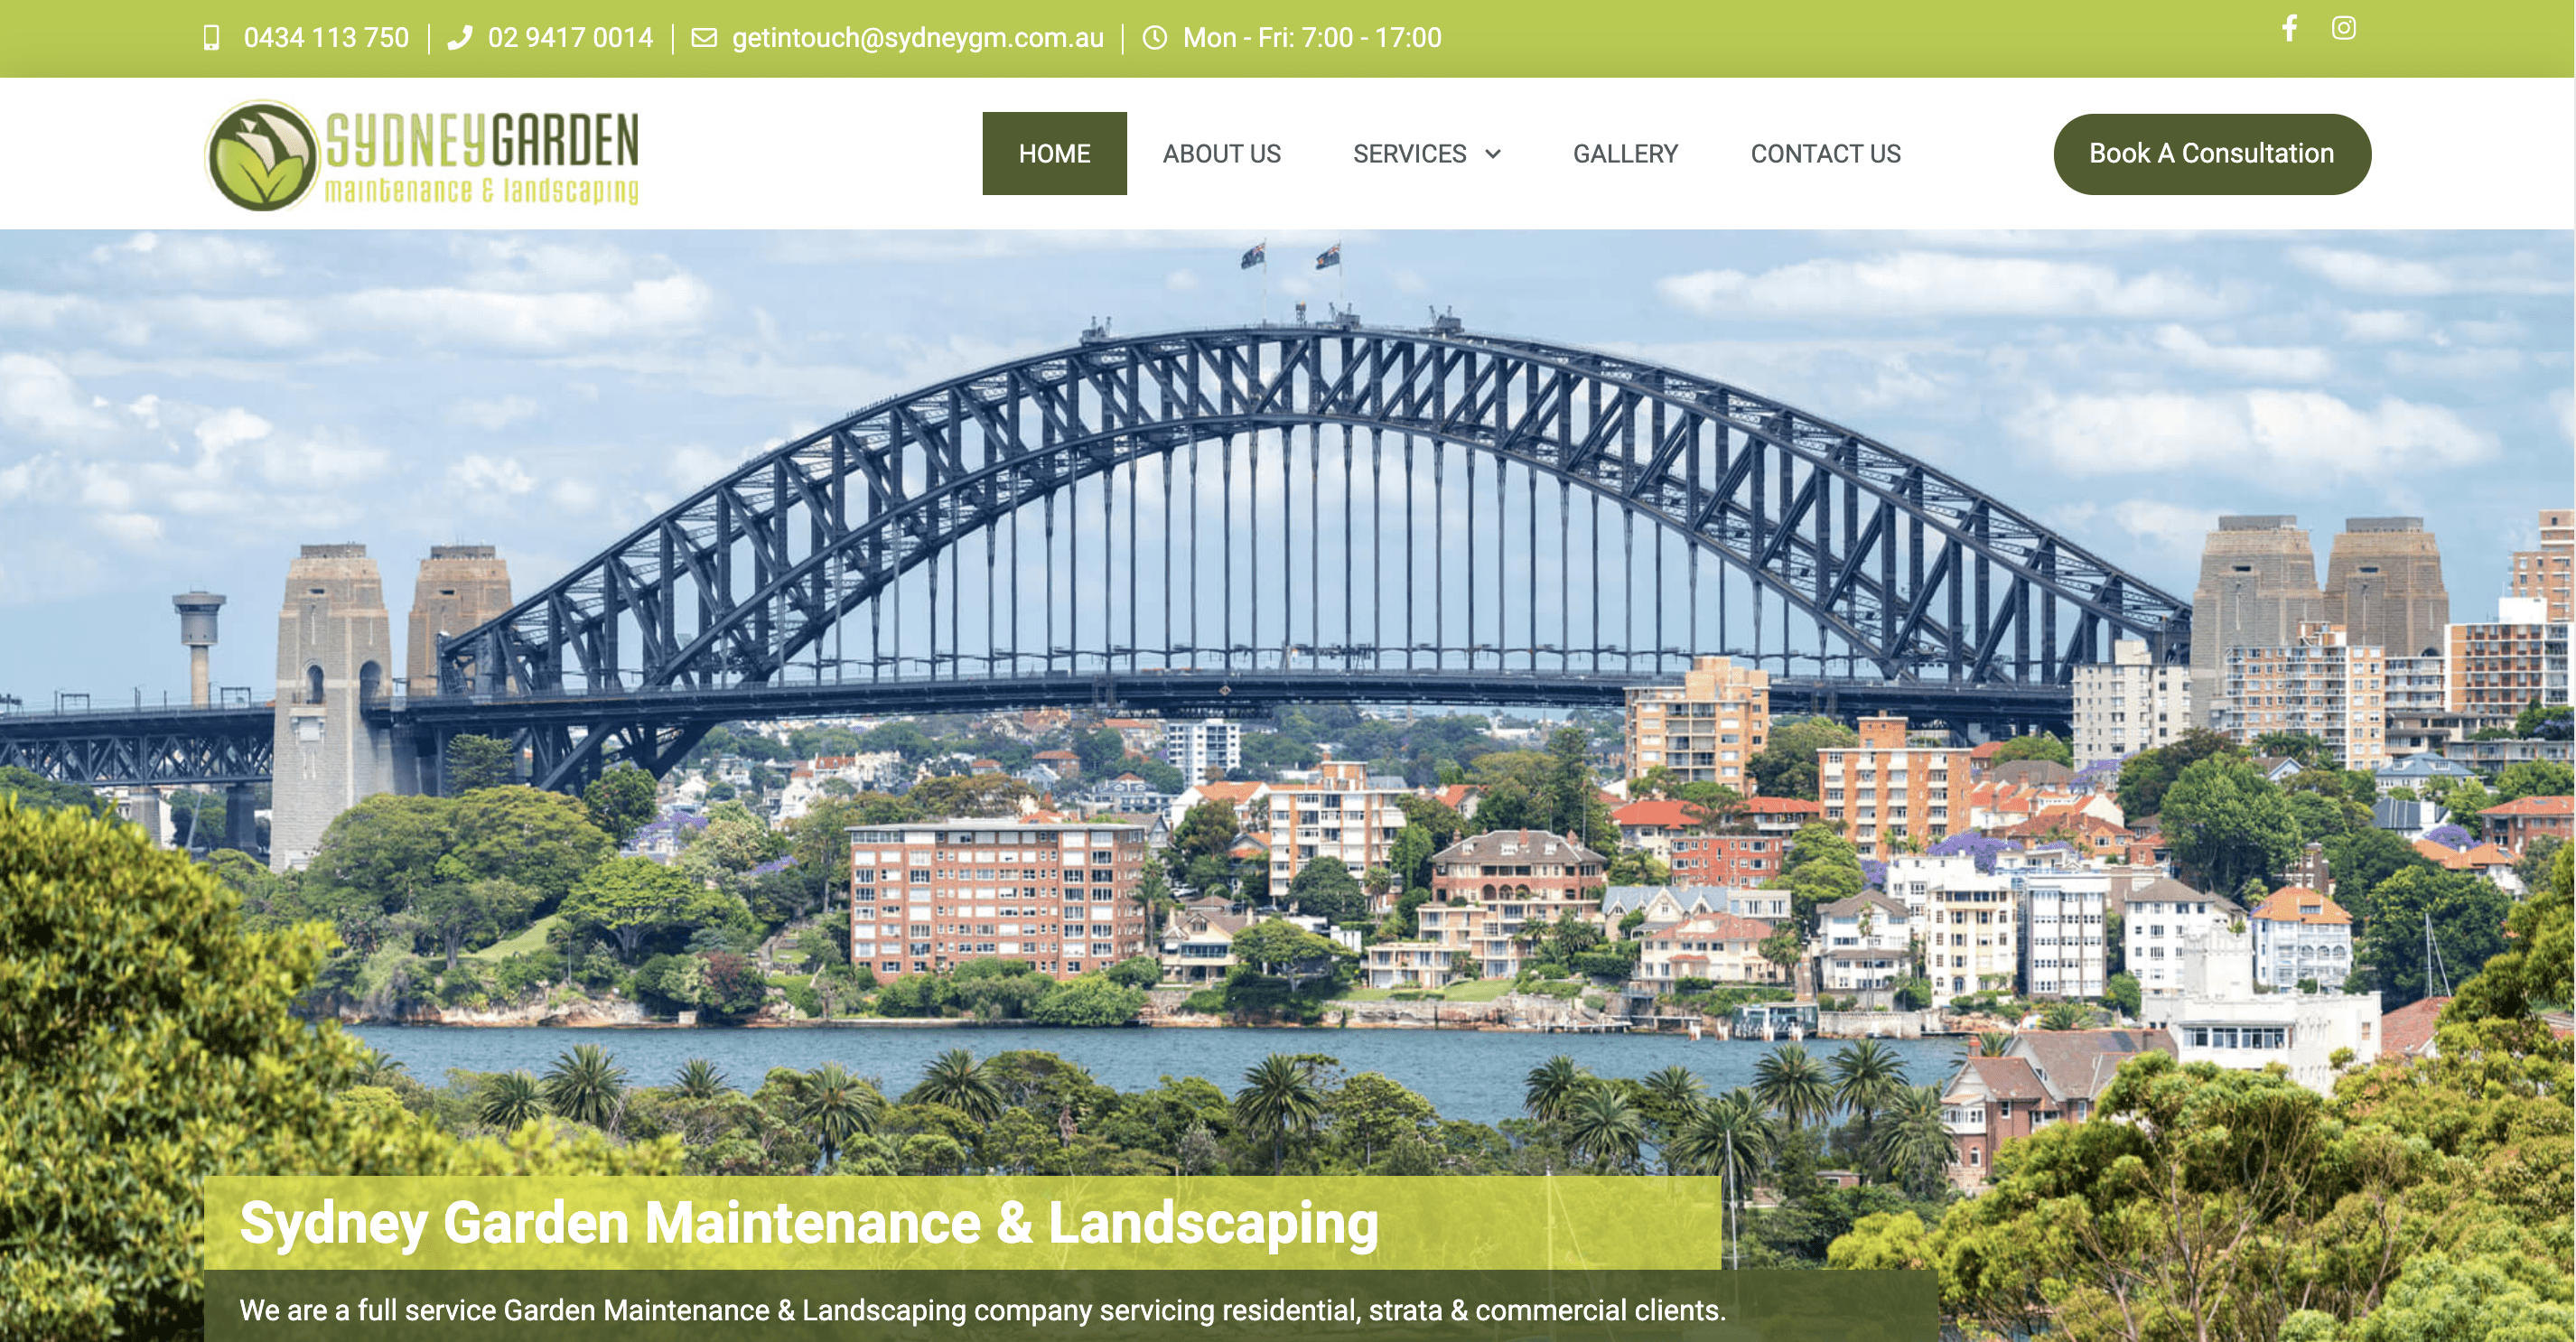 Sydney Gardening and Maintenance's landscaping website's homepage with green banners and an image of the Sydney Harbour Bridge